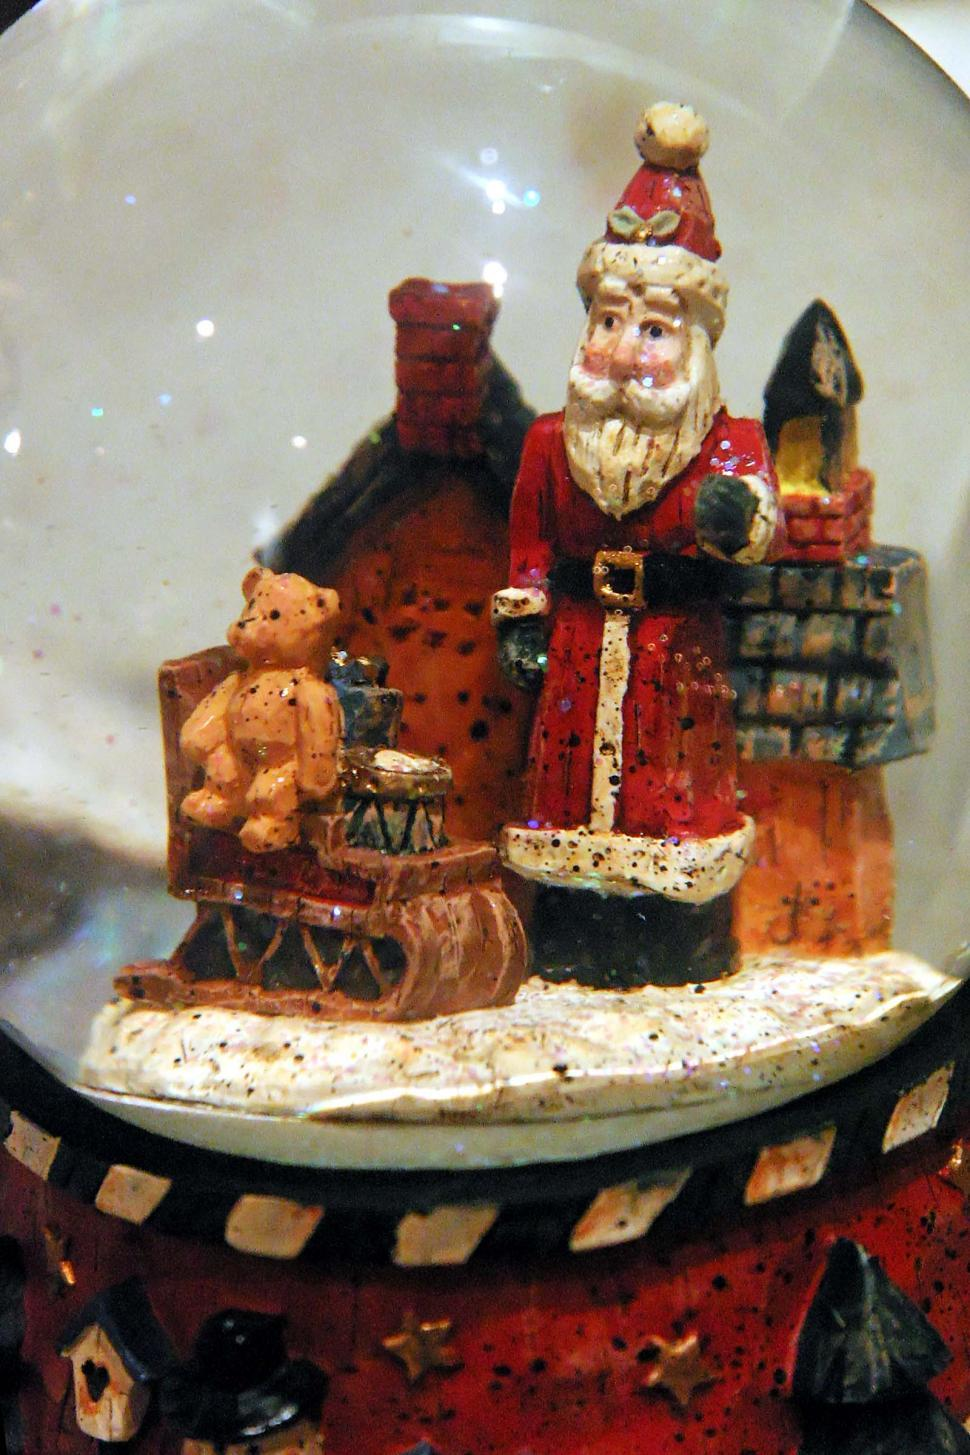 Download Free Stock Photo of christmas holiday holidays decoration claus santa toy doll figurine figure snow globe